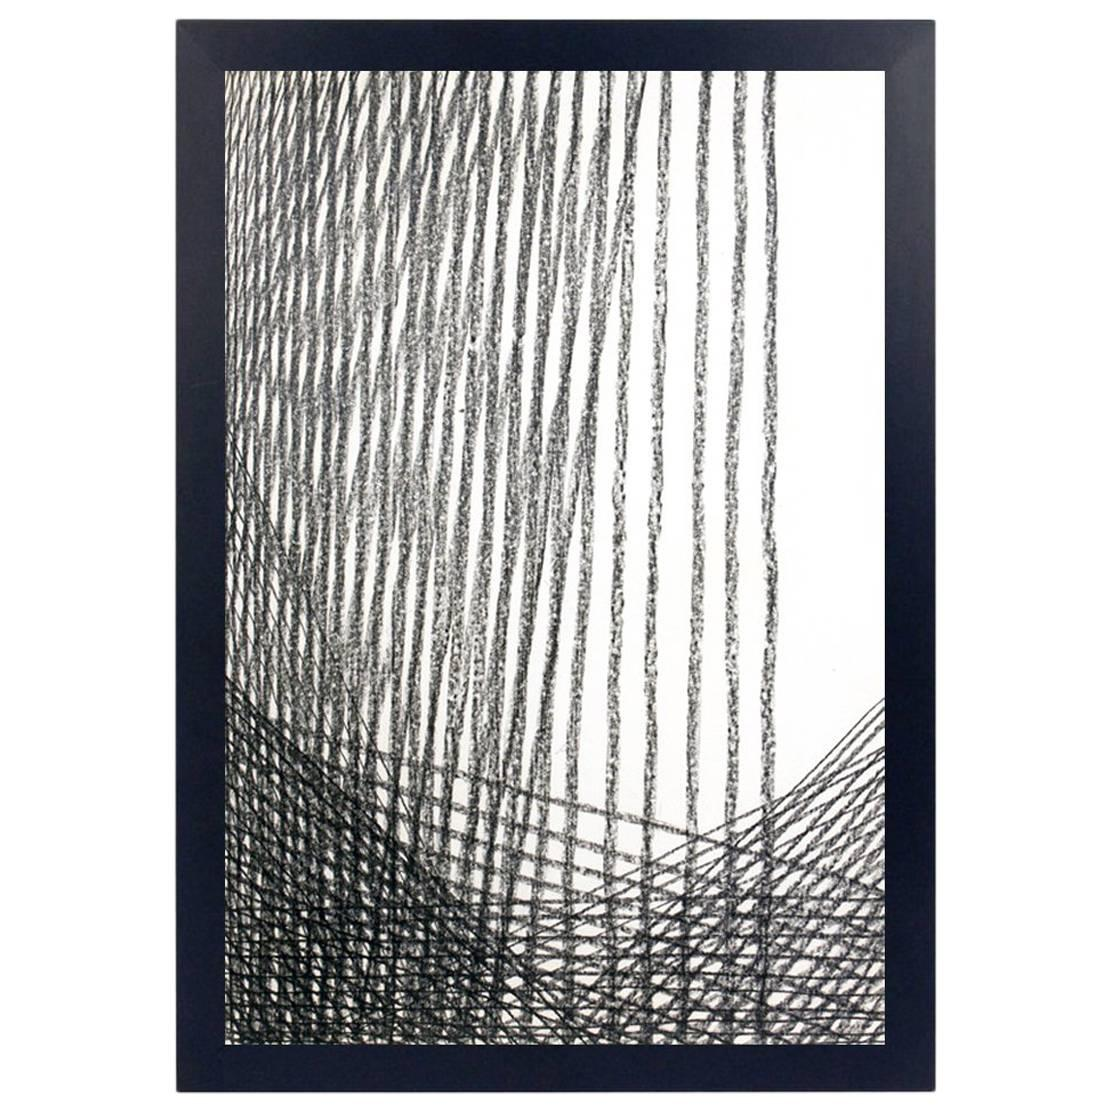 Abstract Charcoal Drawing by Miriam Kubach